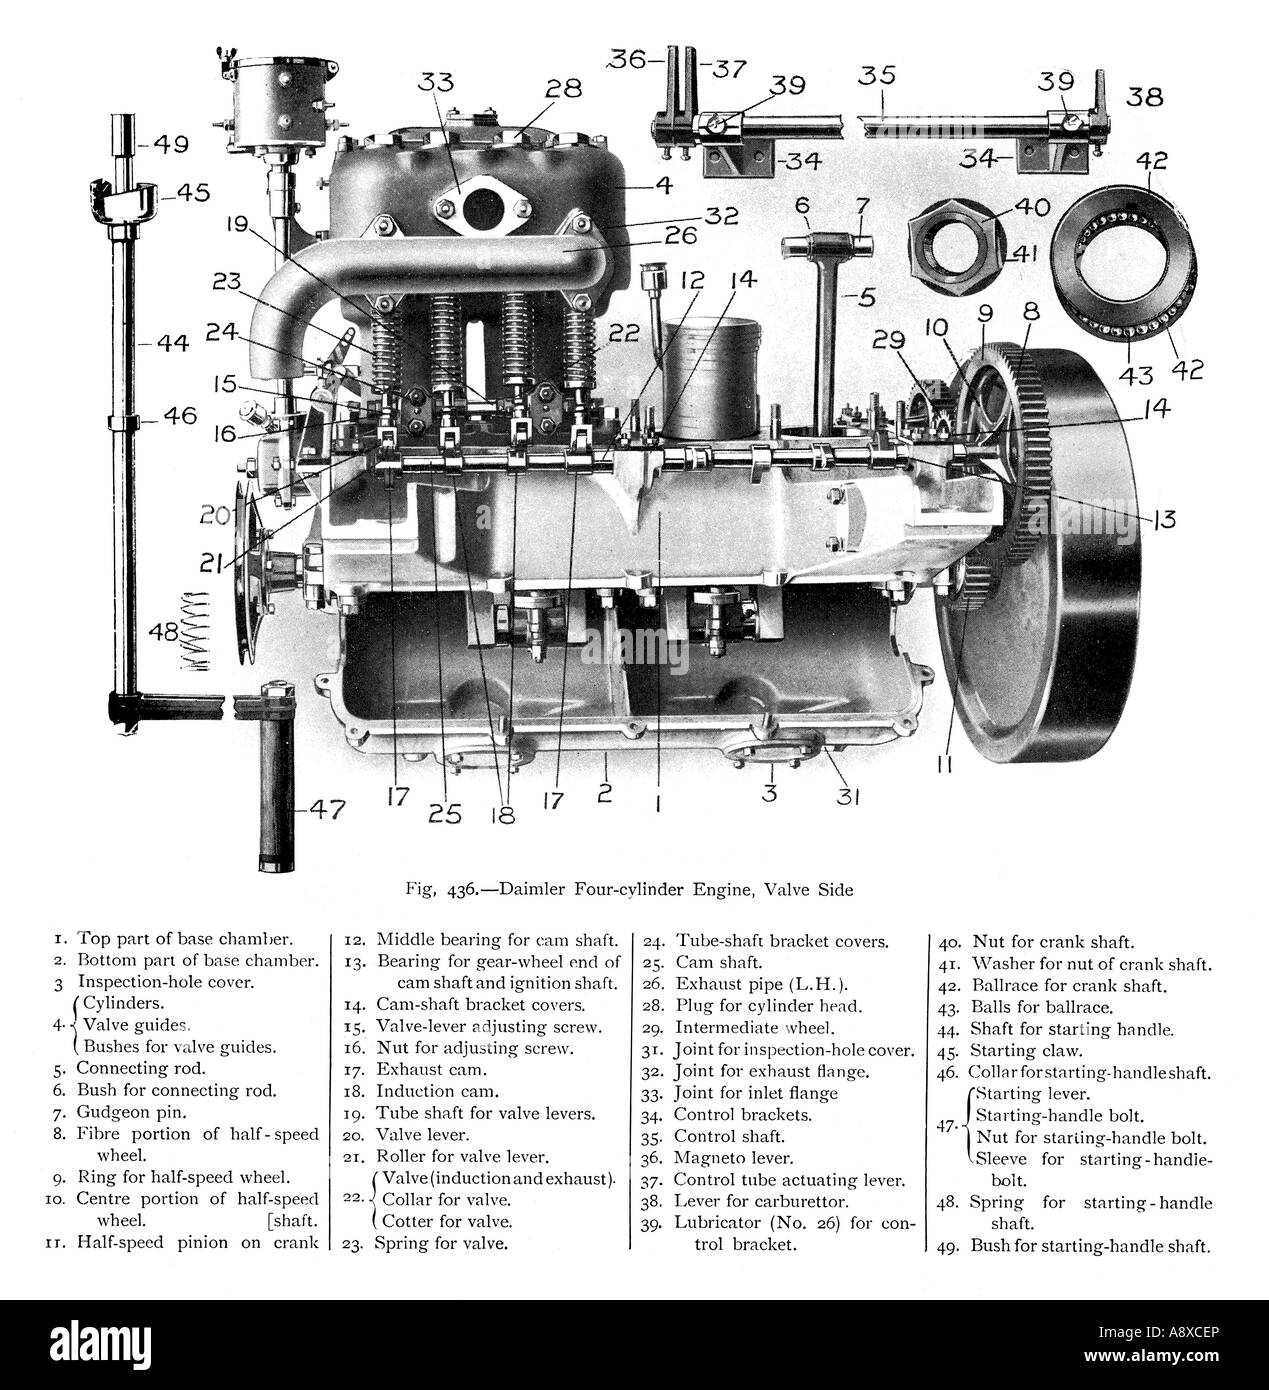 car engine diagram cylinders wiring diagram database 6 Cylinder Engine Diagram car engine diagram stock photos \u0026 car engine diagram stock images engine diagram with labels car engine diagram cylinders